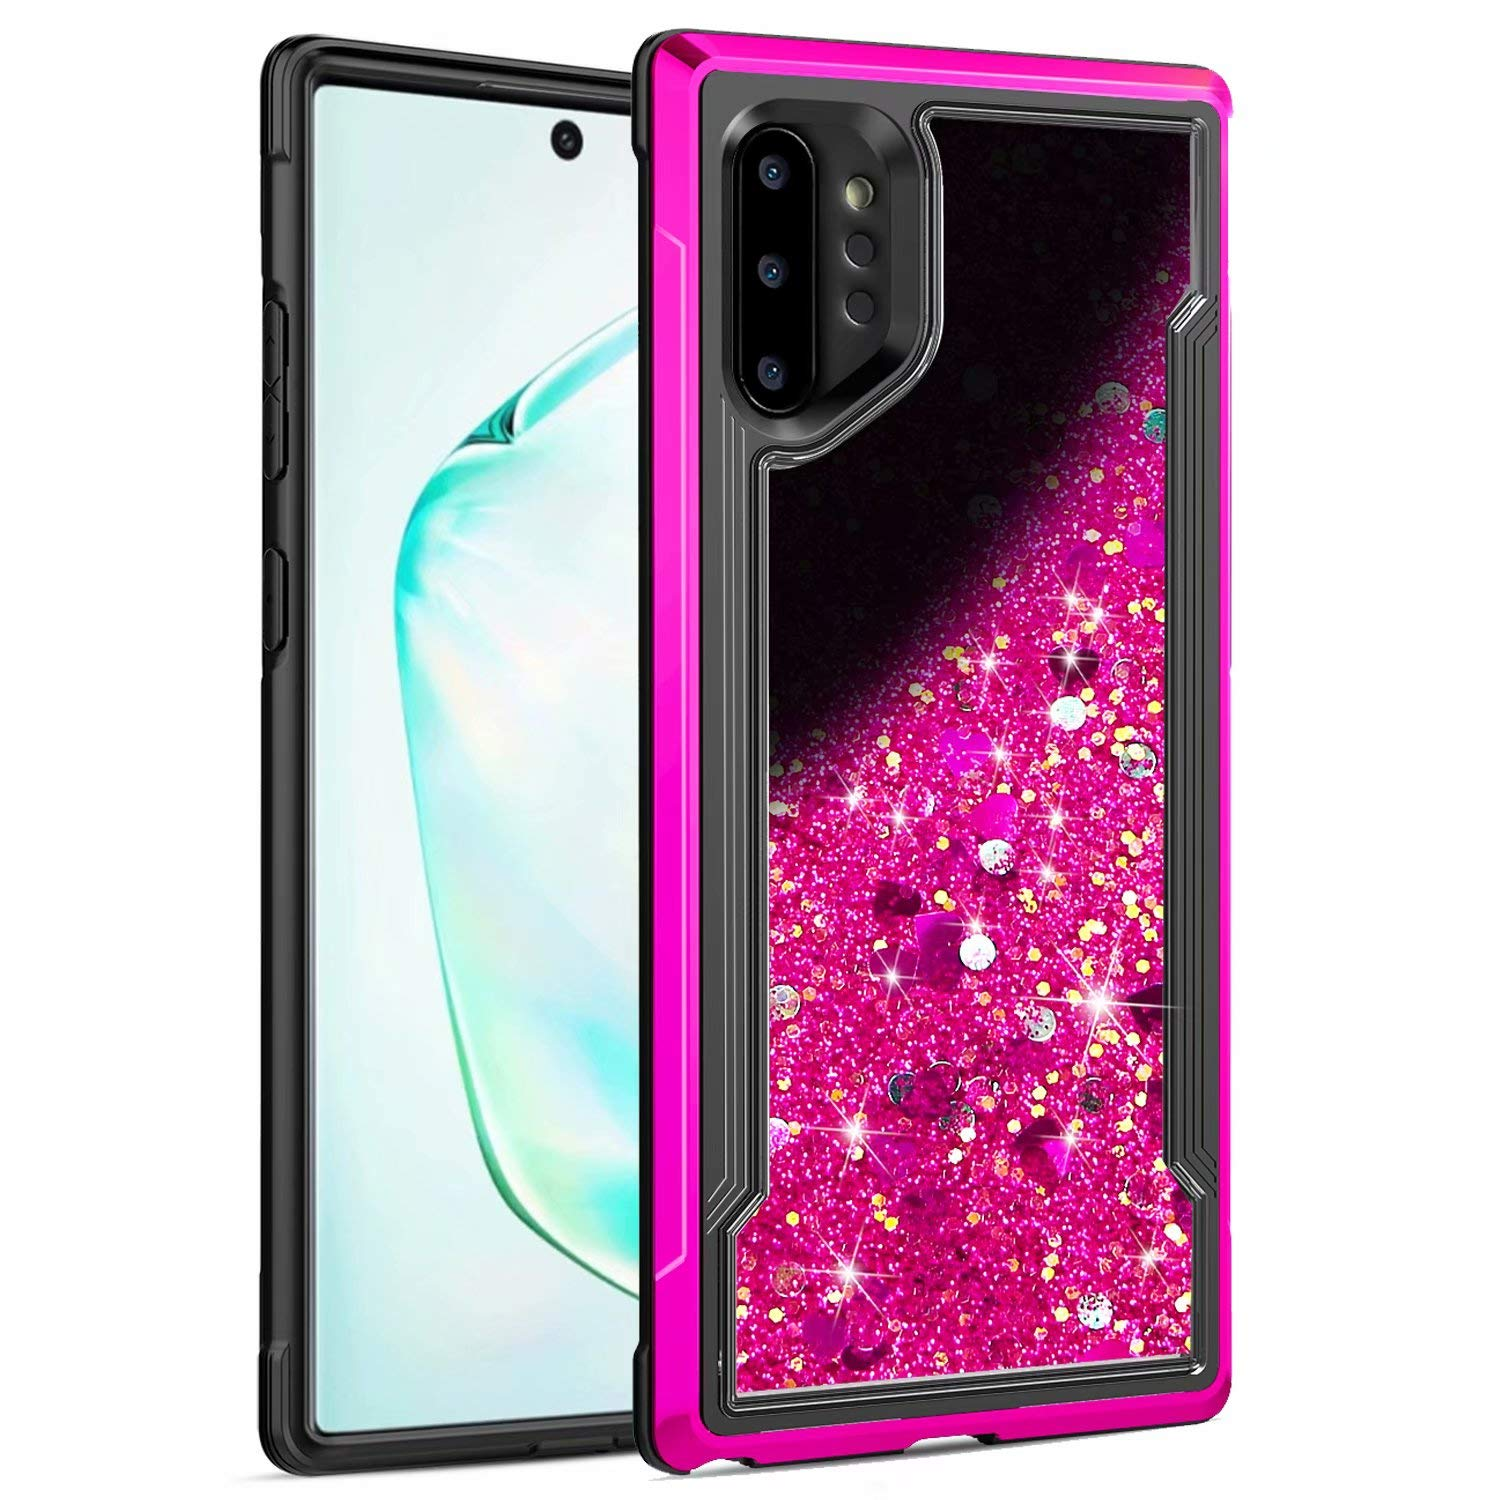 Galaxy Note 10 Case, Ranyi Slim Protective Liquid Glitter Case Flowing Liquid Floating Glitter Sparkle Quicksand Resilient Rubber Electroplated Bumper Case for Samsung Galaxy Note 10 5G (hot Pink) by Ranyi